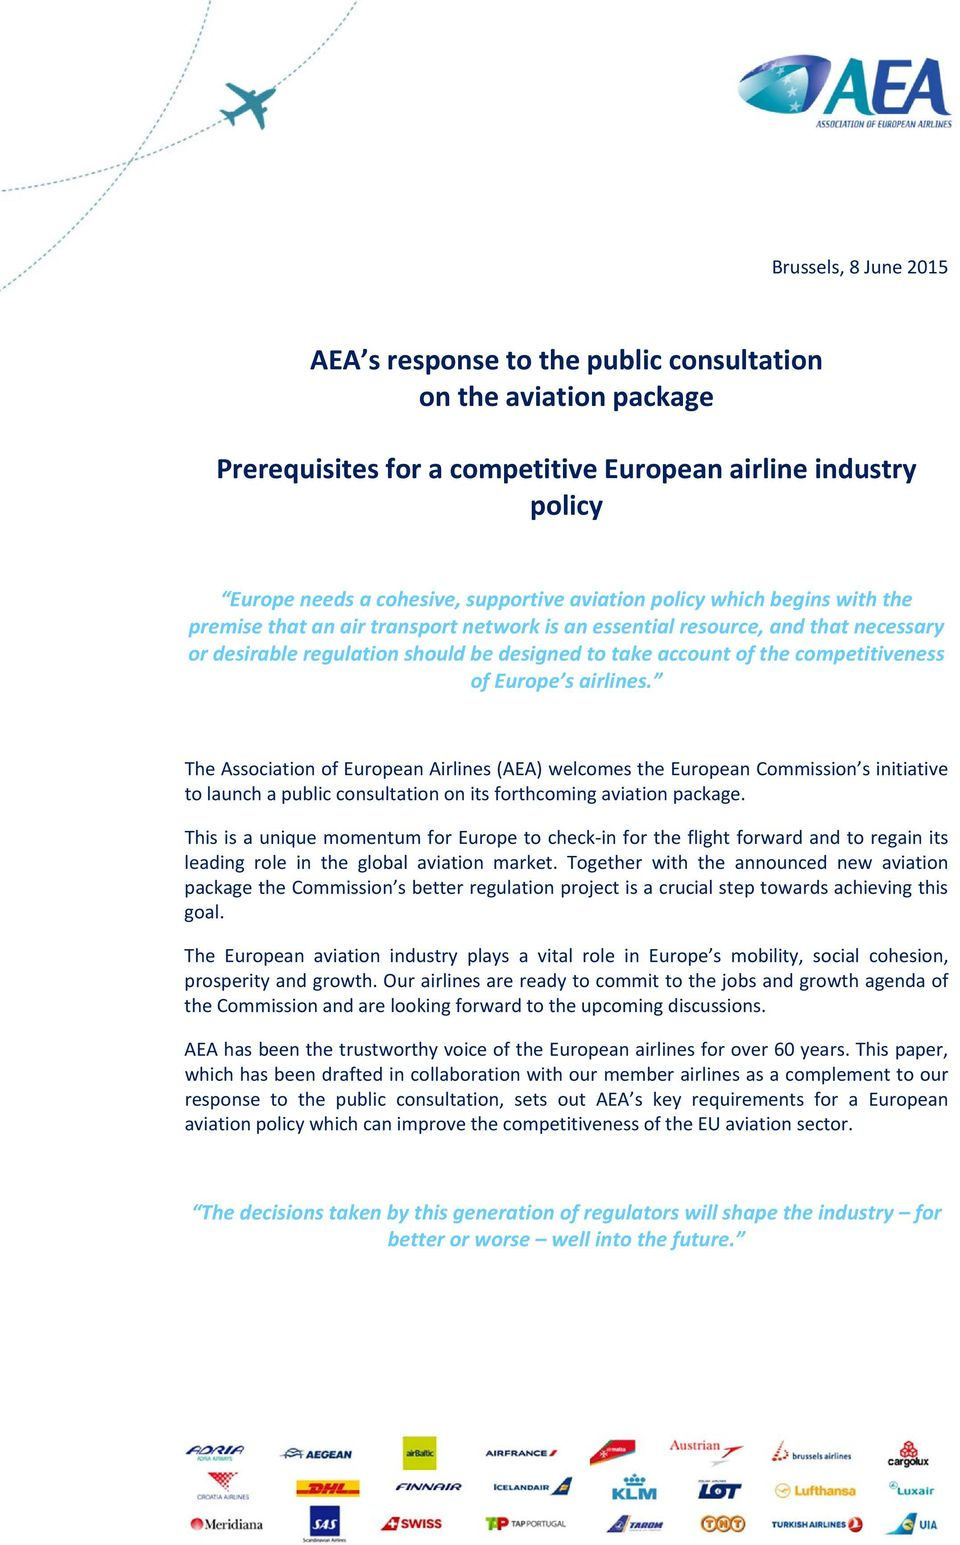 Europe s airlines. The Association of European Airlines (AEA) welcomes the European Commission s initiative to launch a public consultation on its forthcoming aviation package.